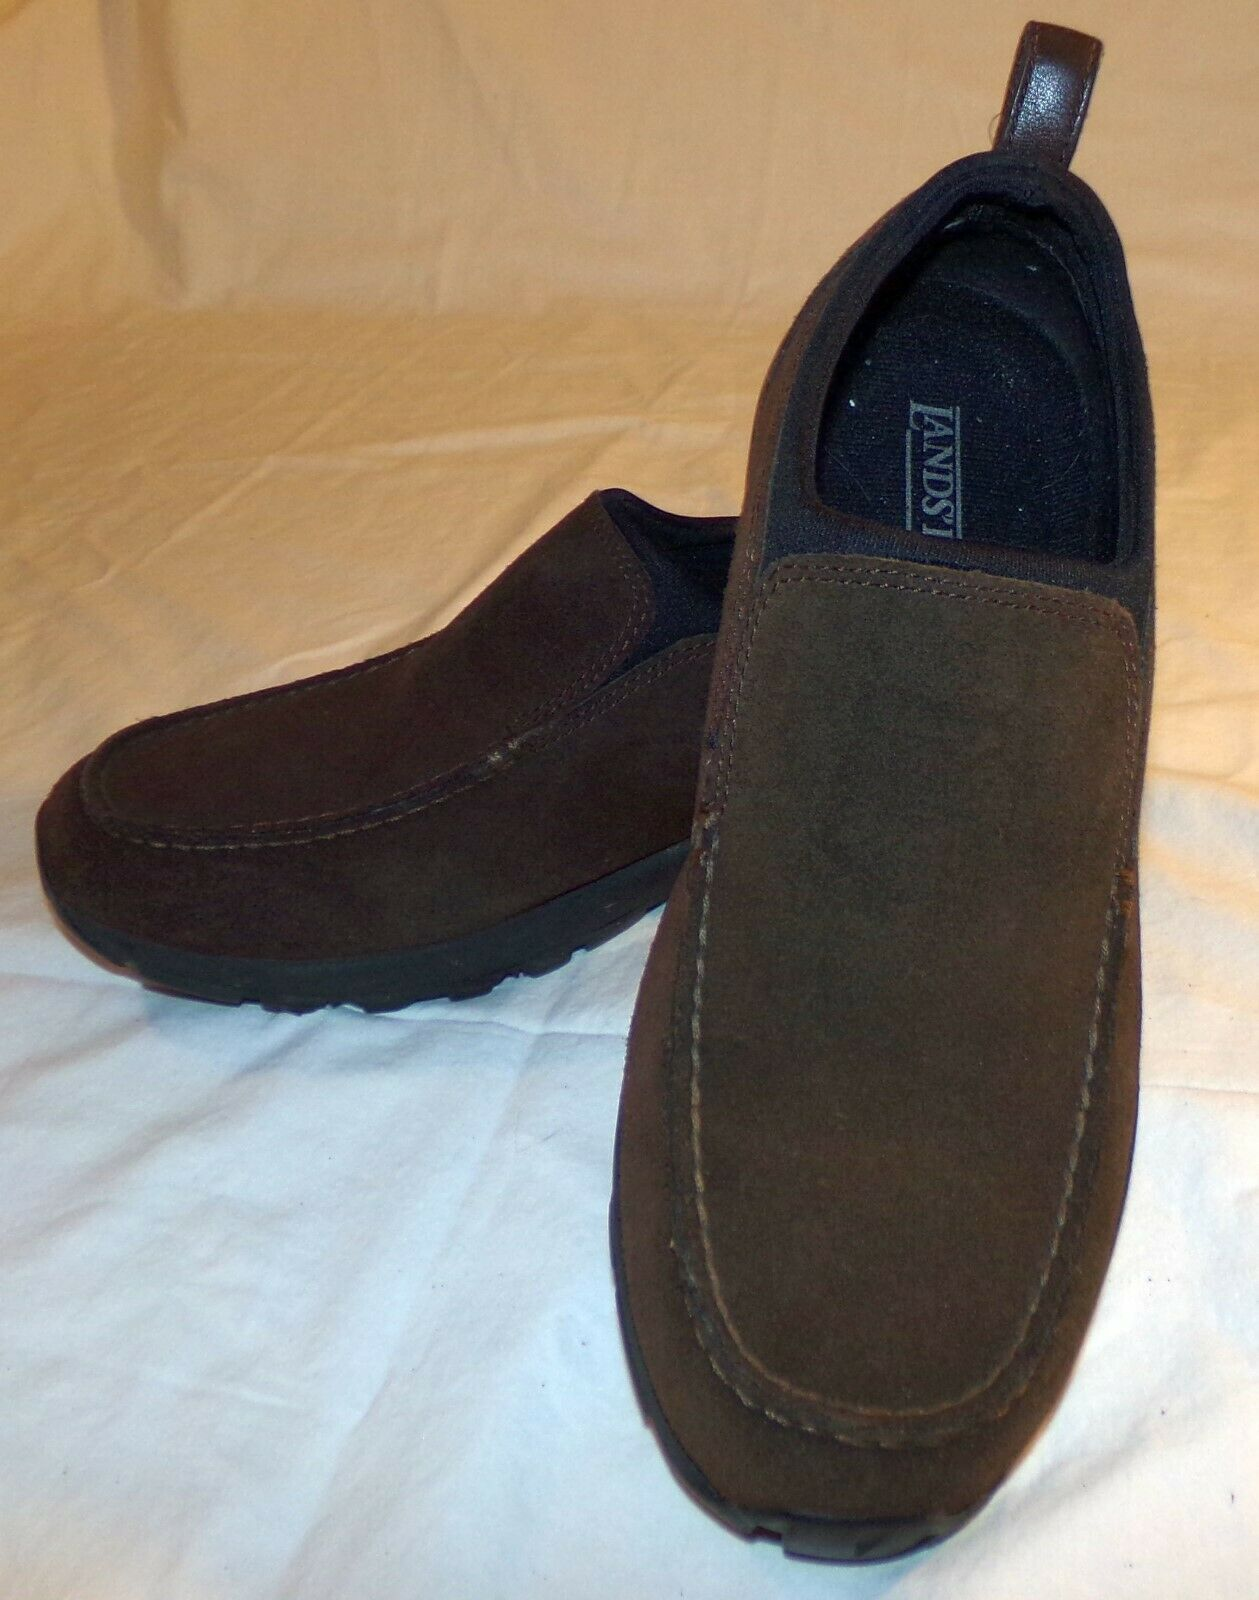 Lands End Brown Suede Slip On Shoes Womens 9 1/2 D 9.5 - $32.90